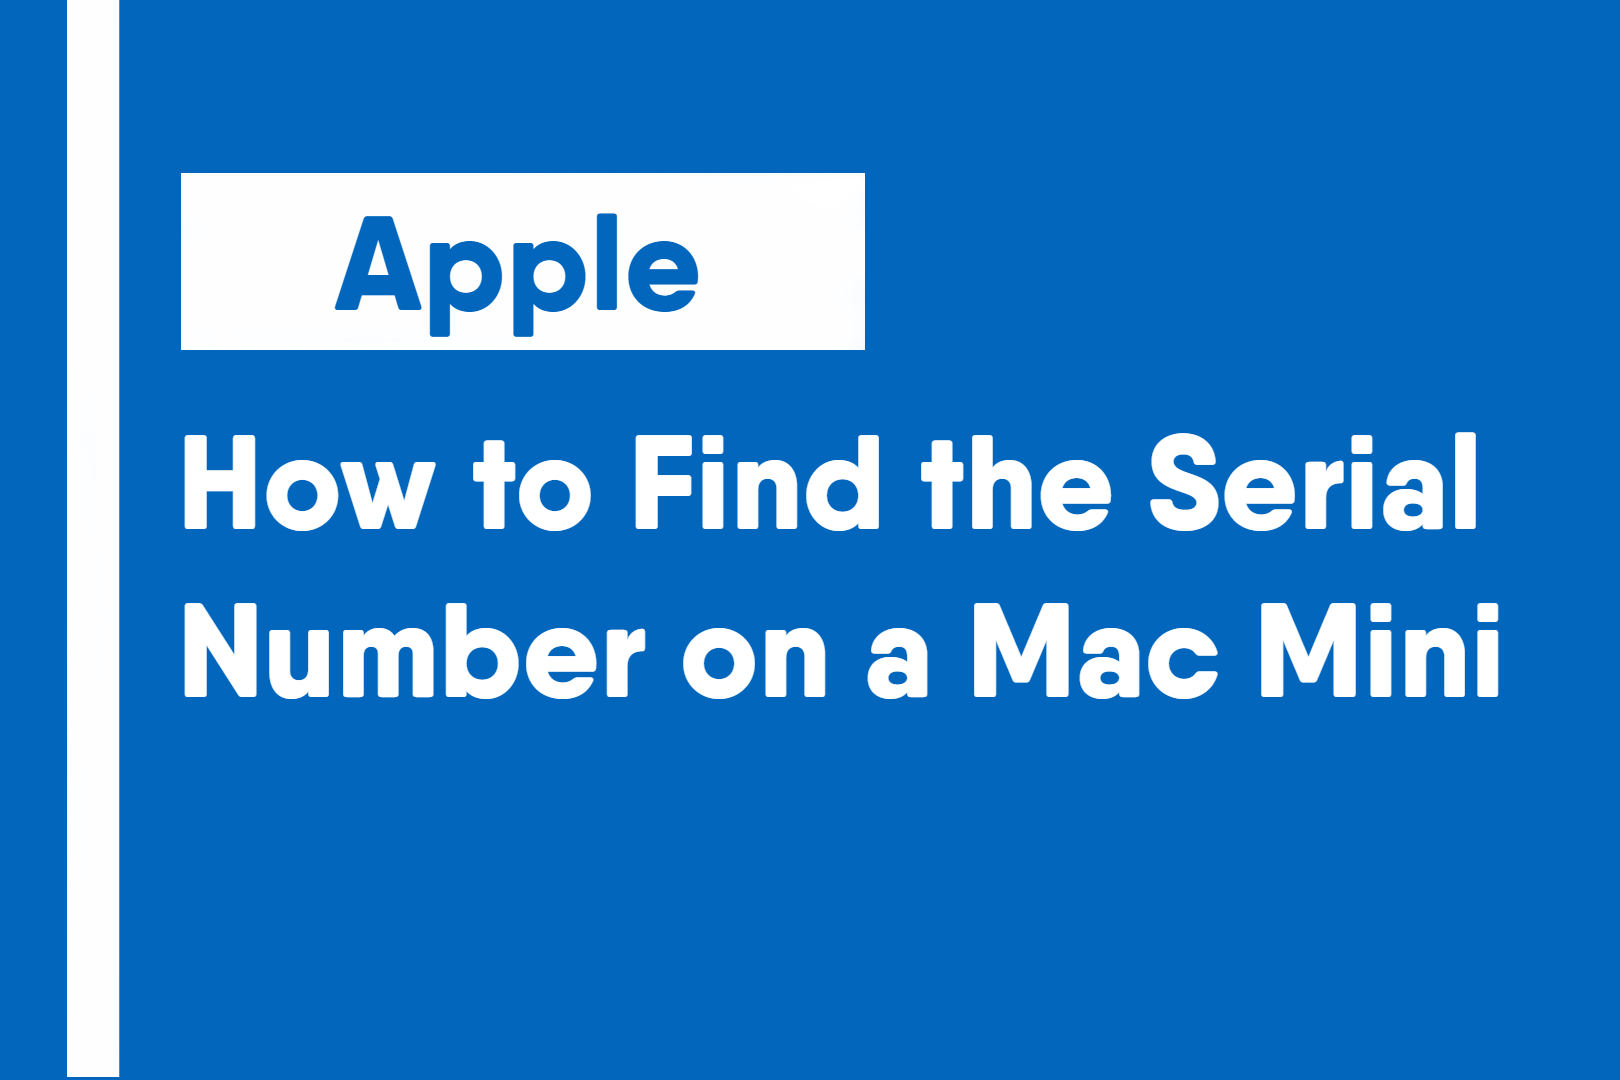 How to Find the Serial Number on a Mac Mini